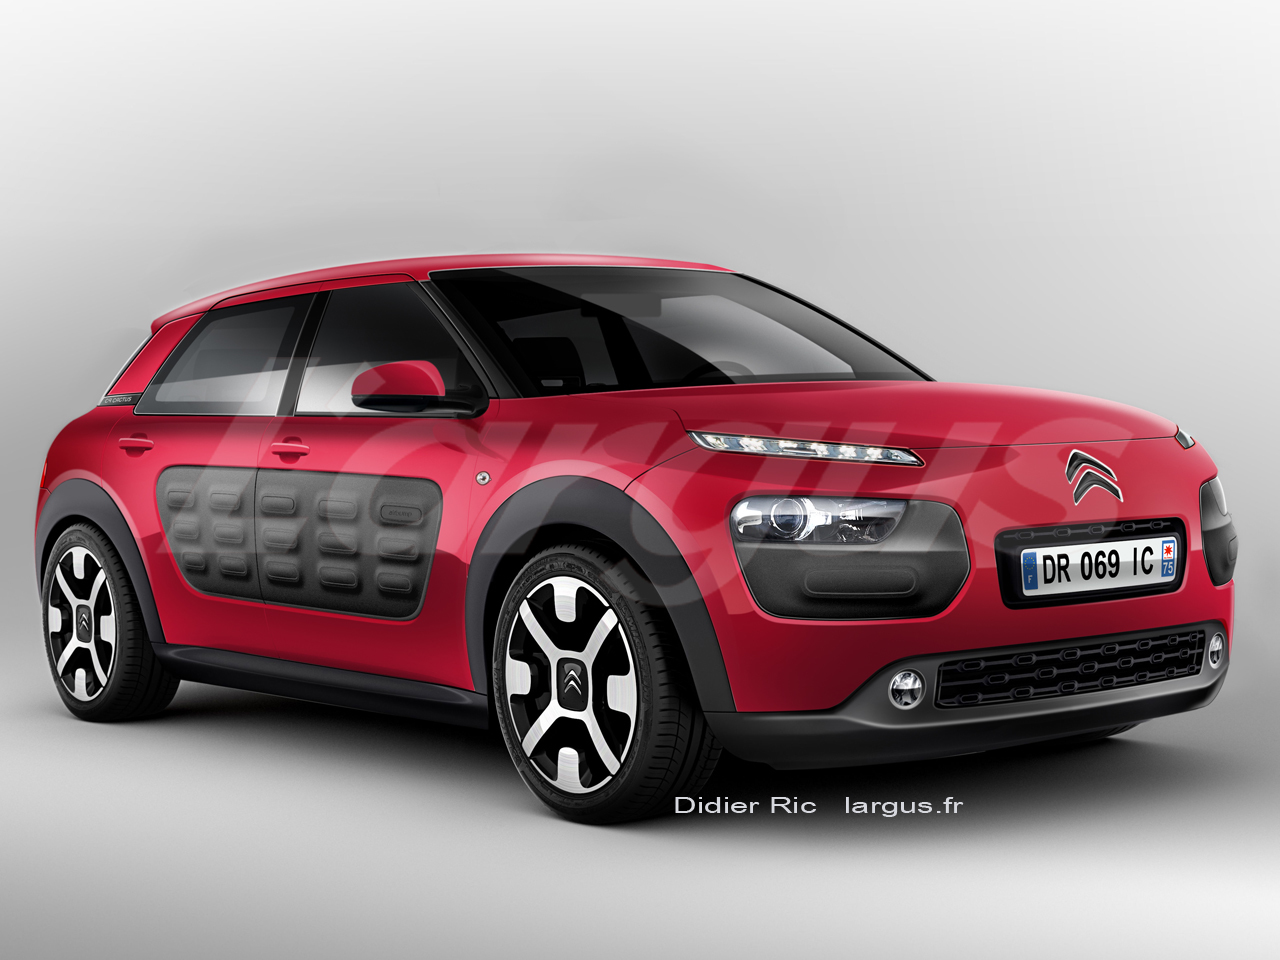 citroen c4 cactus tous les secrets de la future citro n c4 cactus 2014 en vid o salon de. Black Bedroom Furniture Sets. Home Design Ideas